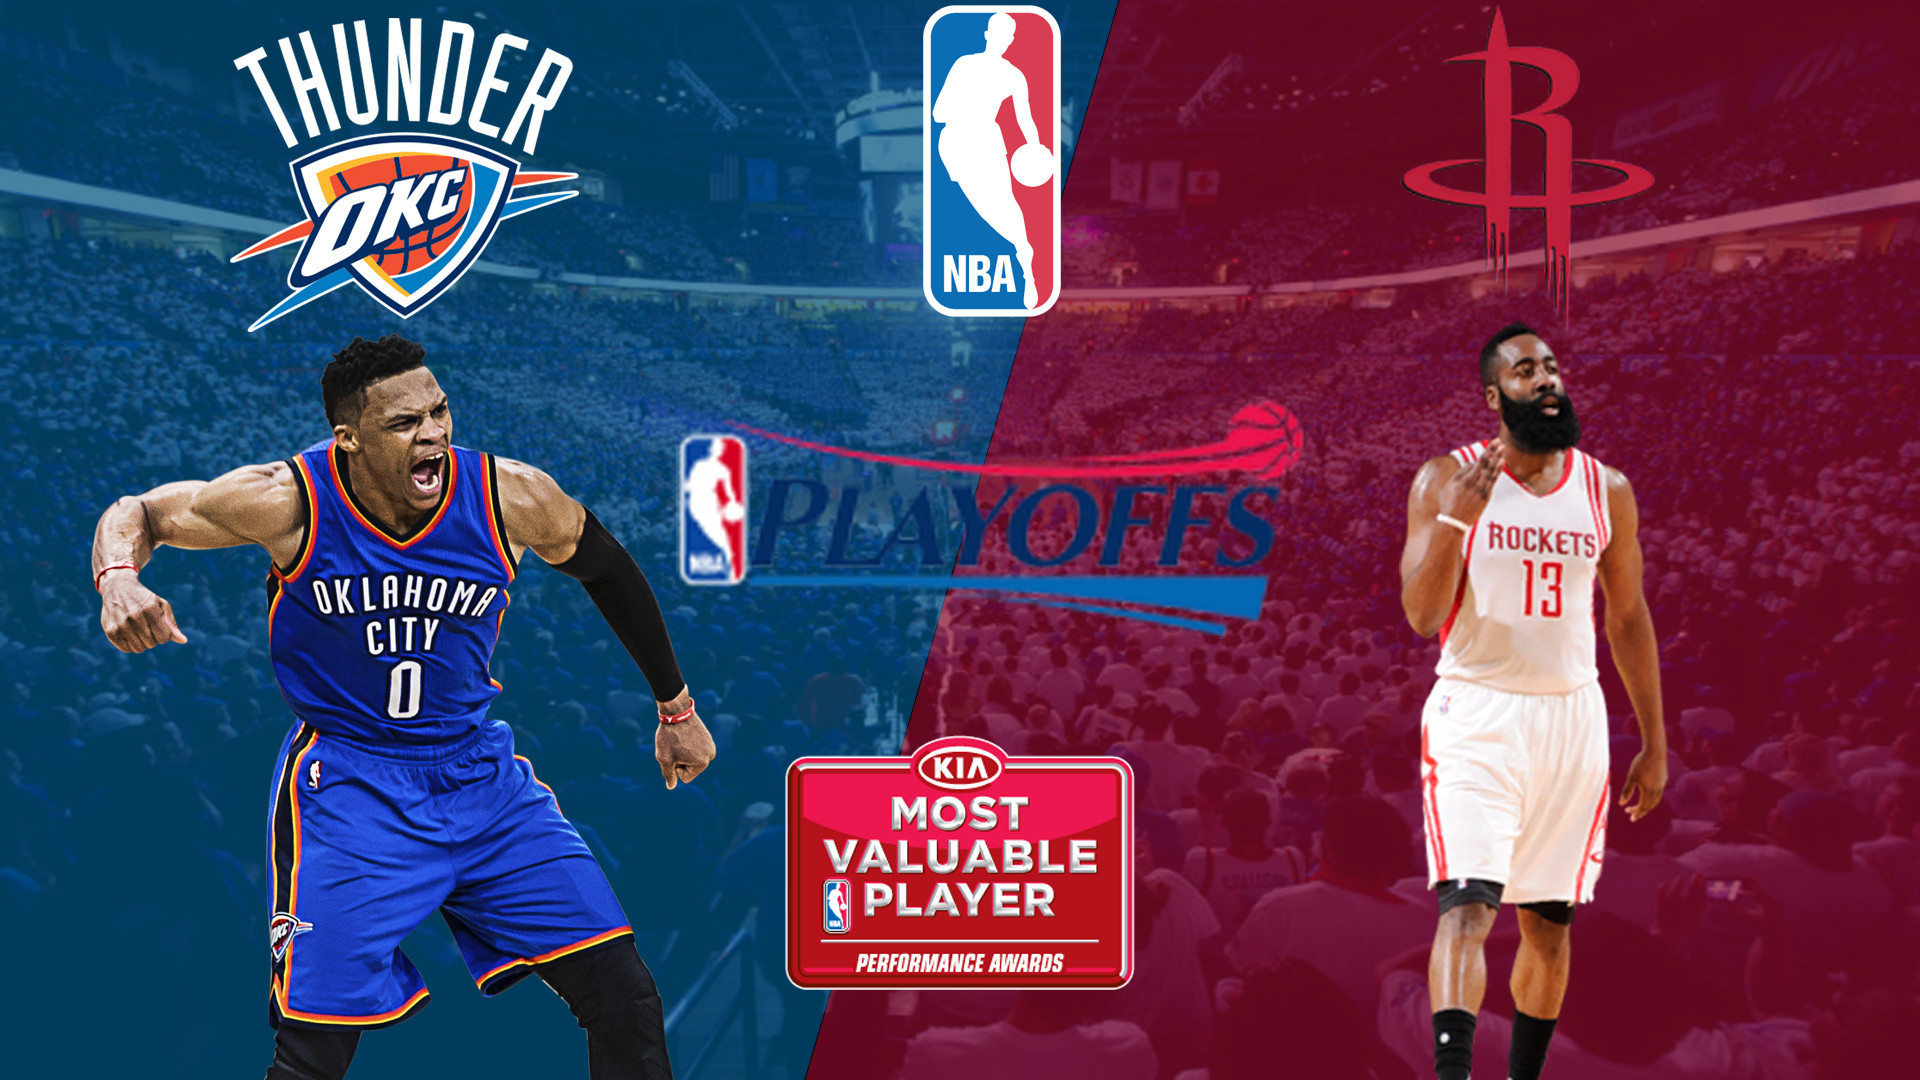 Russell Westbrook vs James Harden (Rate 1-10)